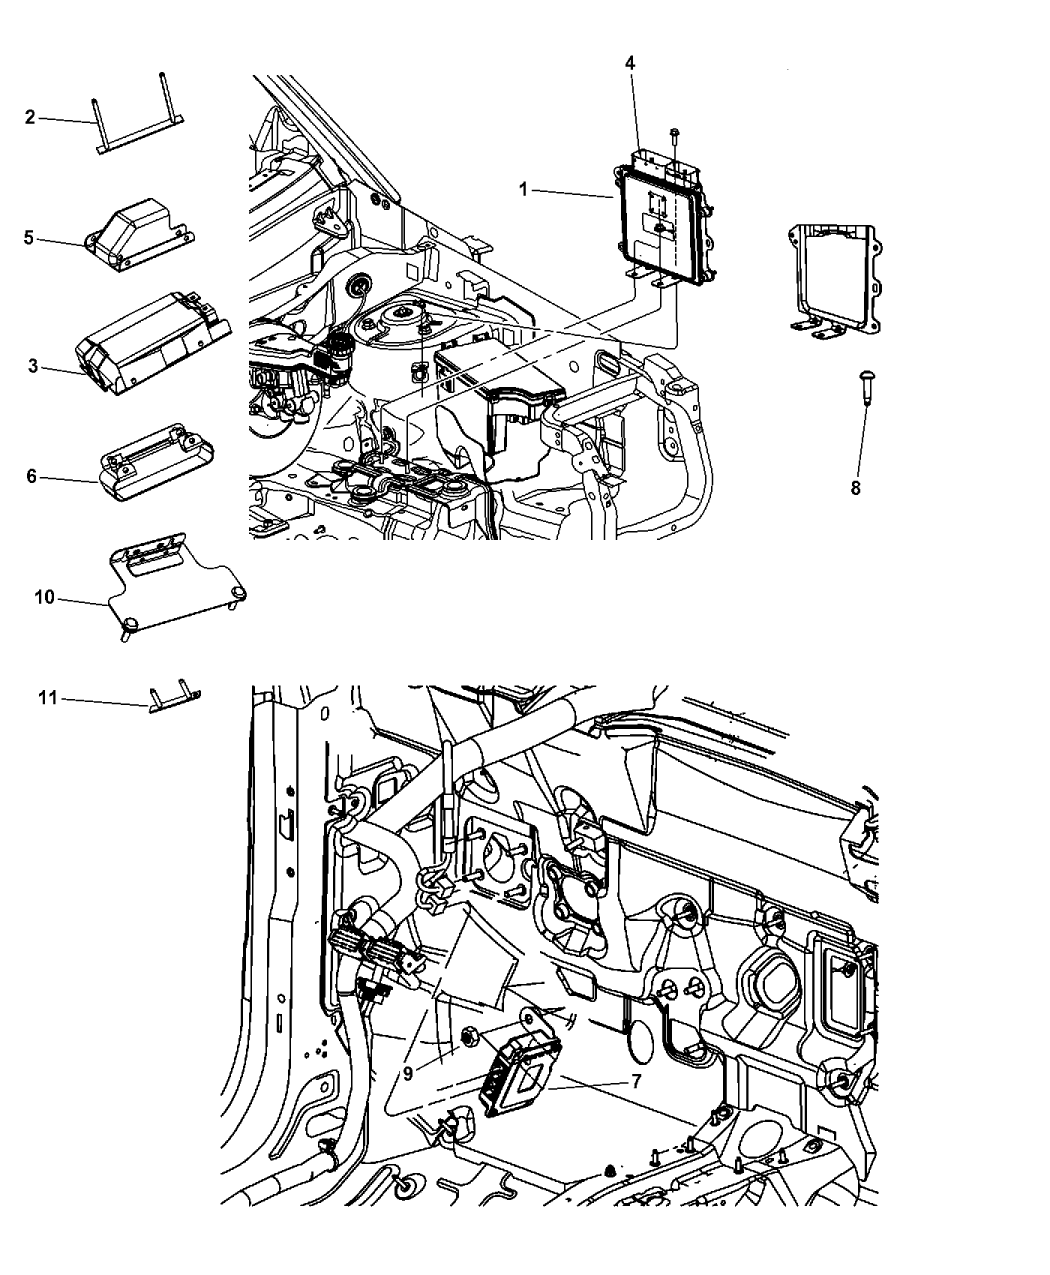 [SCHEMATICS_48EU]  2013 Jeep Compass Engine Diagram. 5150762ab genuine jeep module powertrain  control. jeep compass manifold intake export use for 11 06 2017. jeep  compass need a diagram of a serpentine belt for a | 2013 Jeep Compass Engine Diagram |  | A.2002-acura-tl-radio.info. All Rights Reserved.